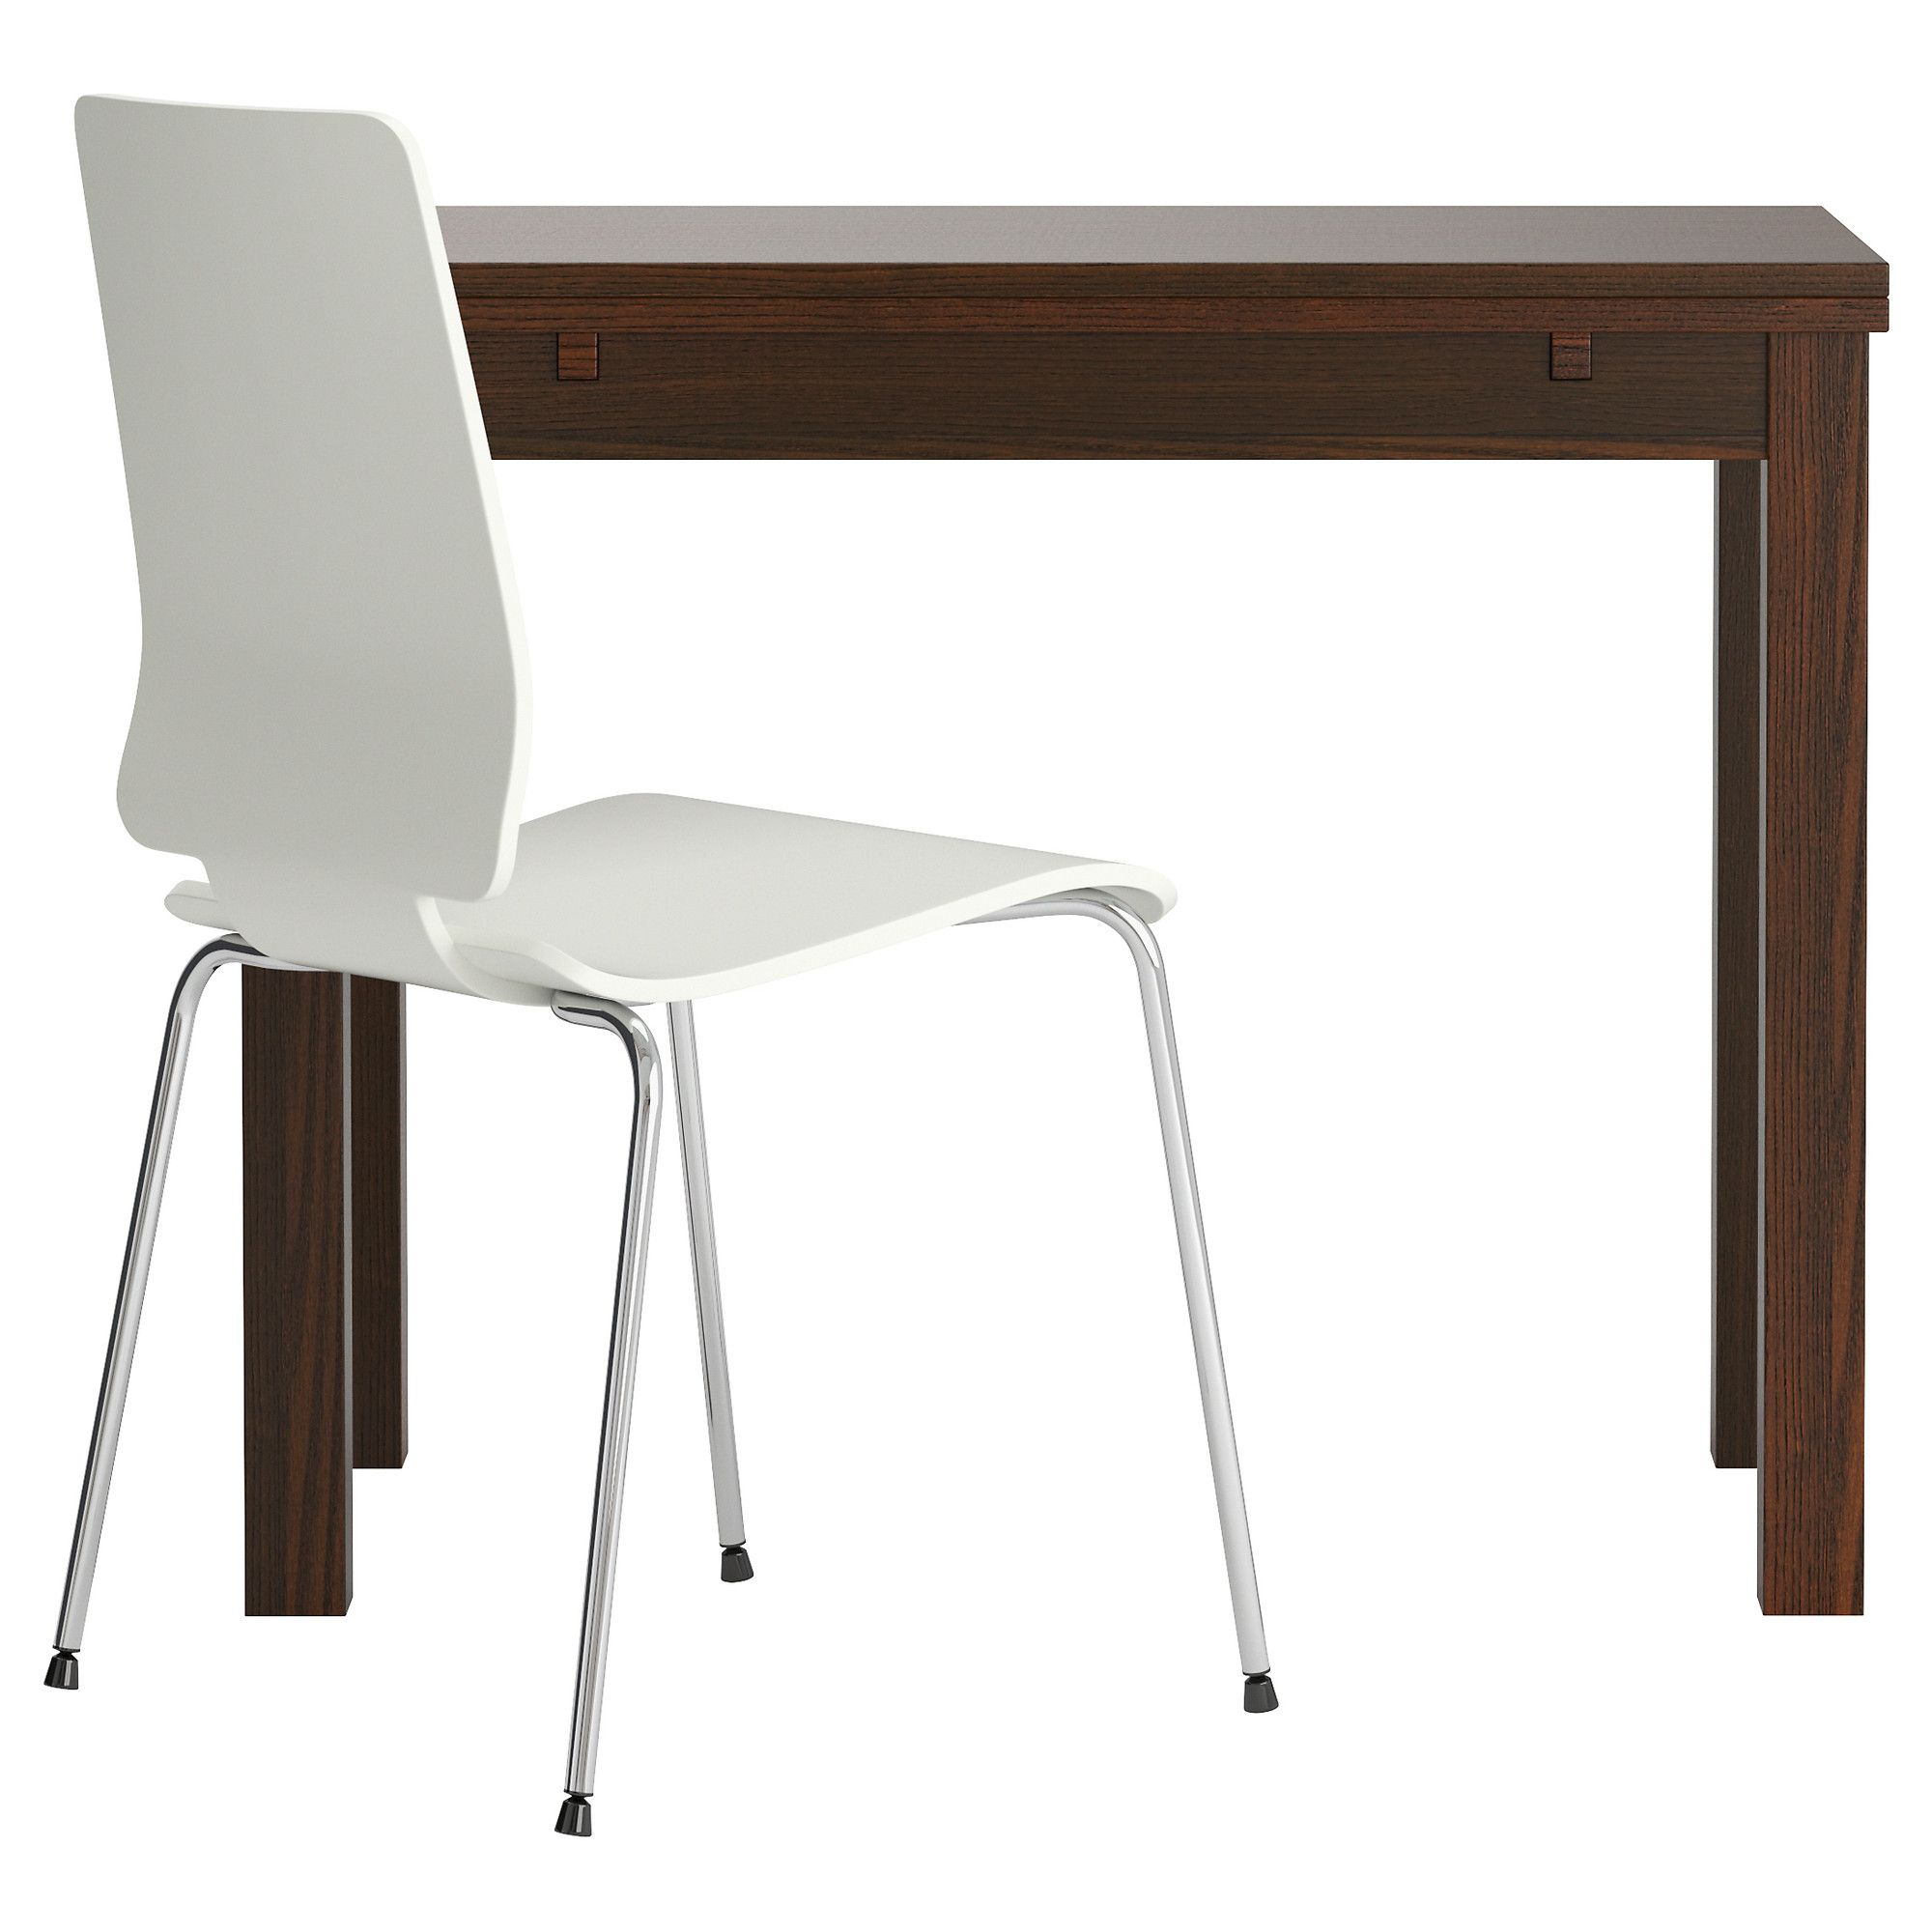 Ikea Bjursta Bank Bjursta Gilbert Table And 1 Chair Ikea But The Bigger Table And